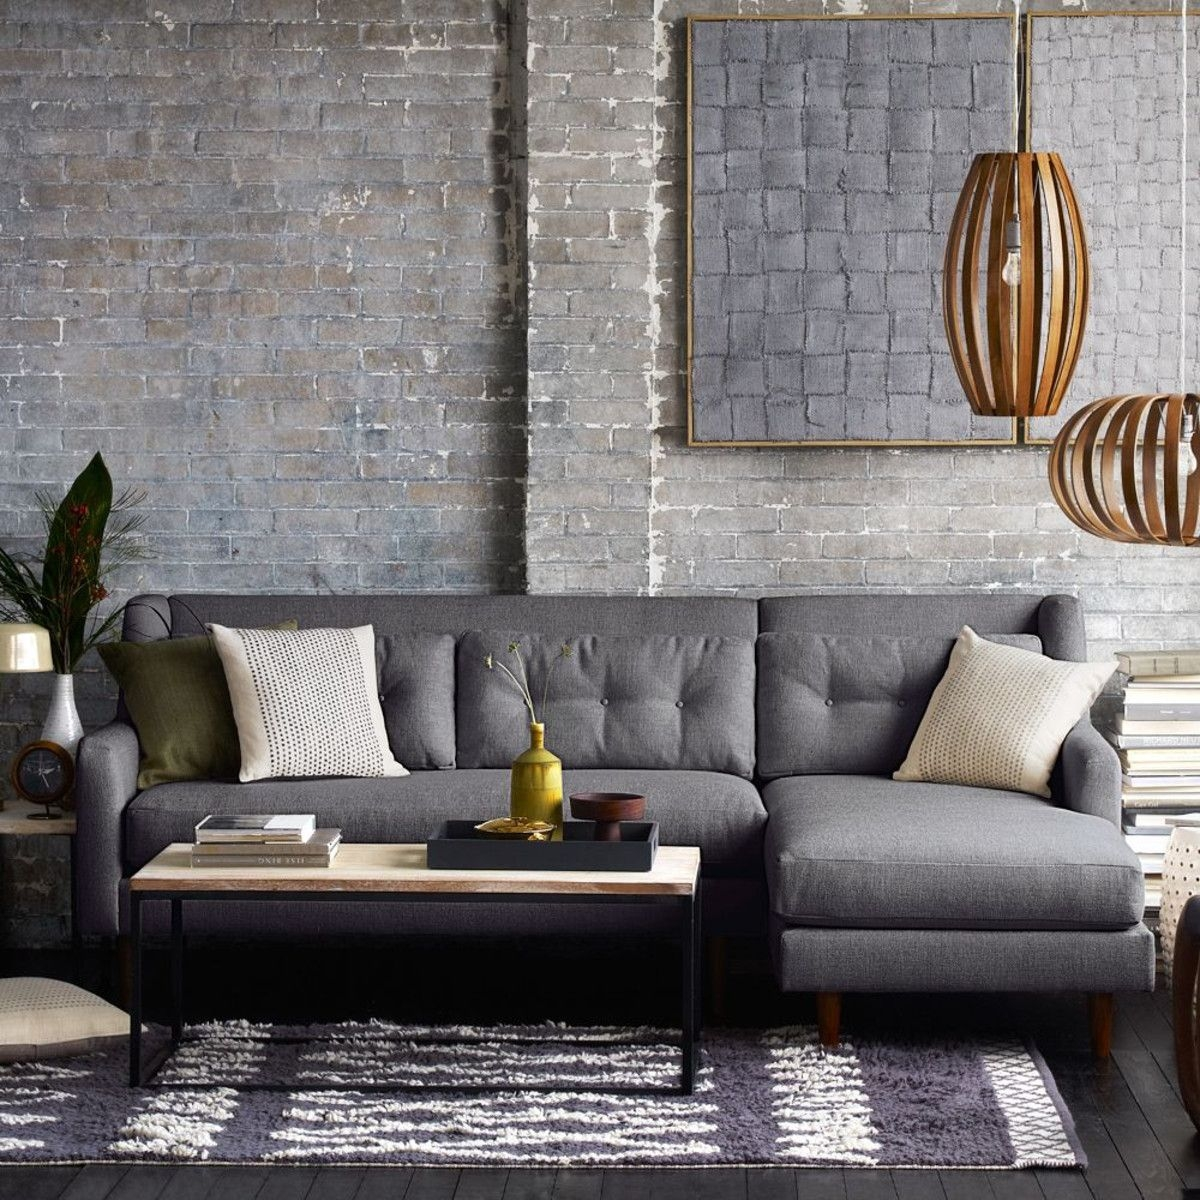 Ordinaire Modern Sectional Sofas For Small Spaces